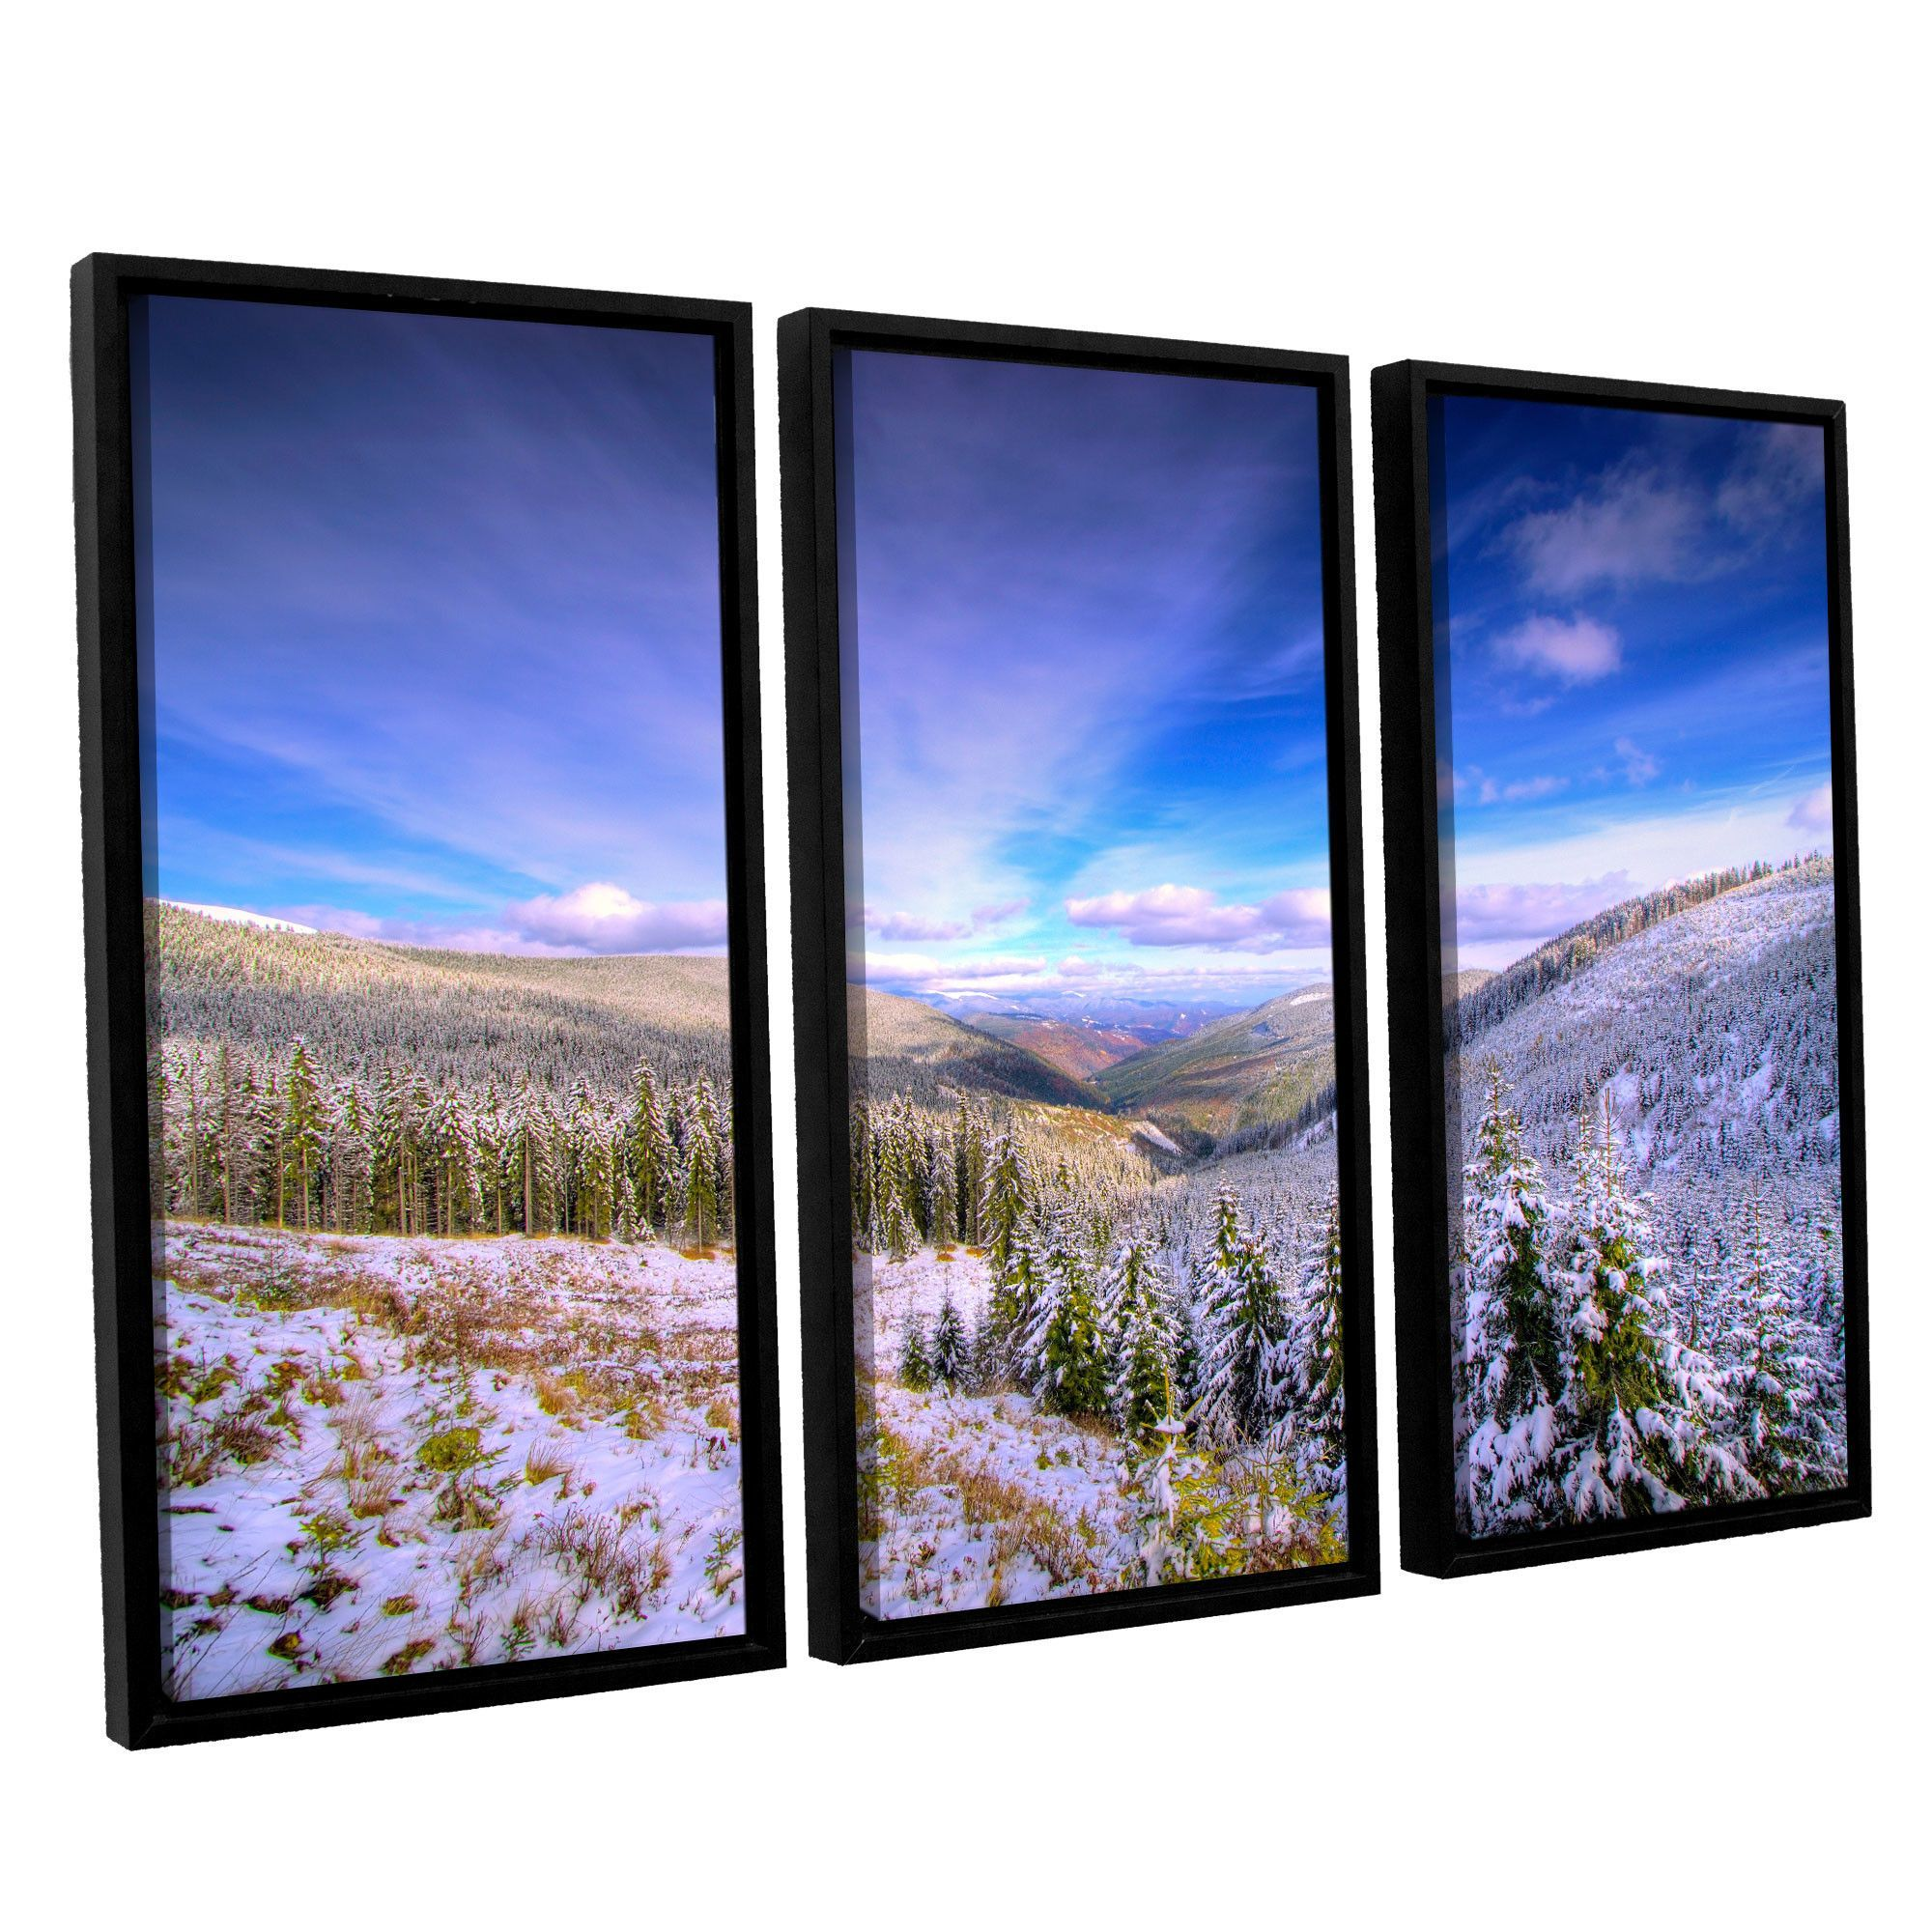 Winter Lands II by Dragos Dumitrascu 3 Piece Floater Framed Photographic Print on Canvas Set